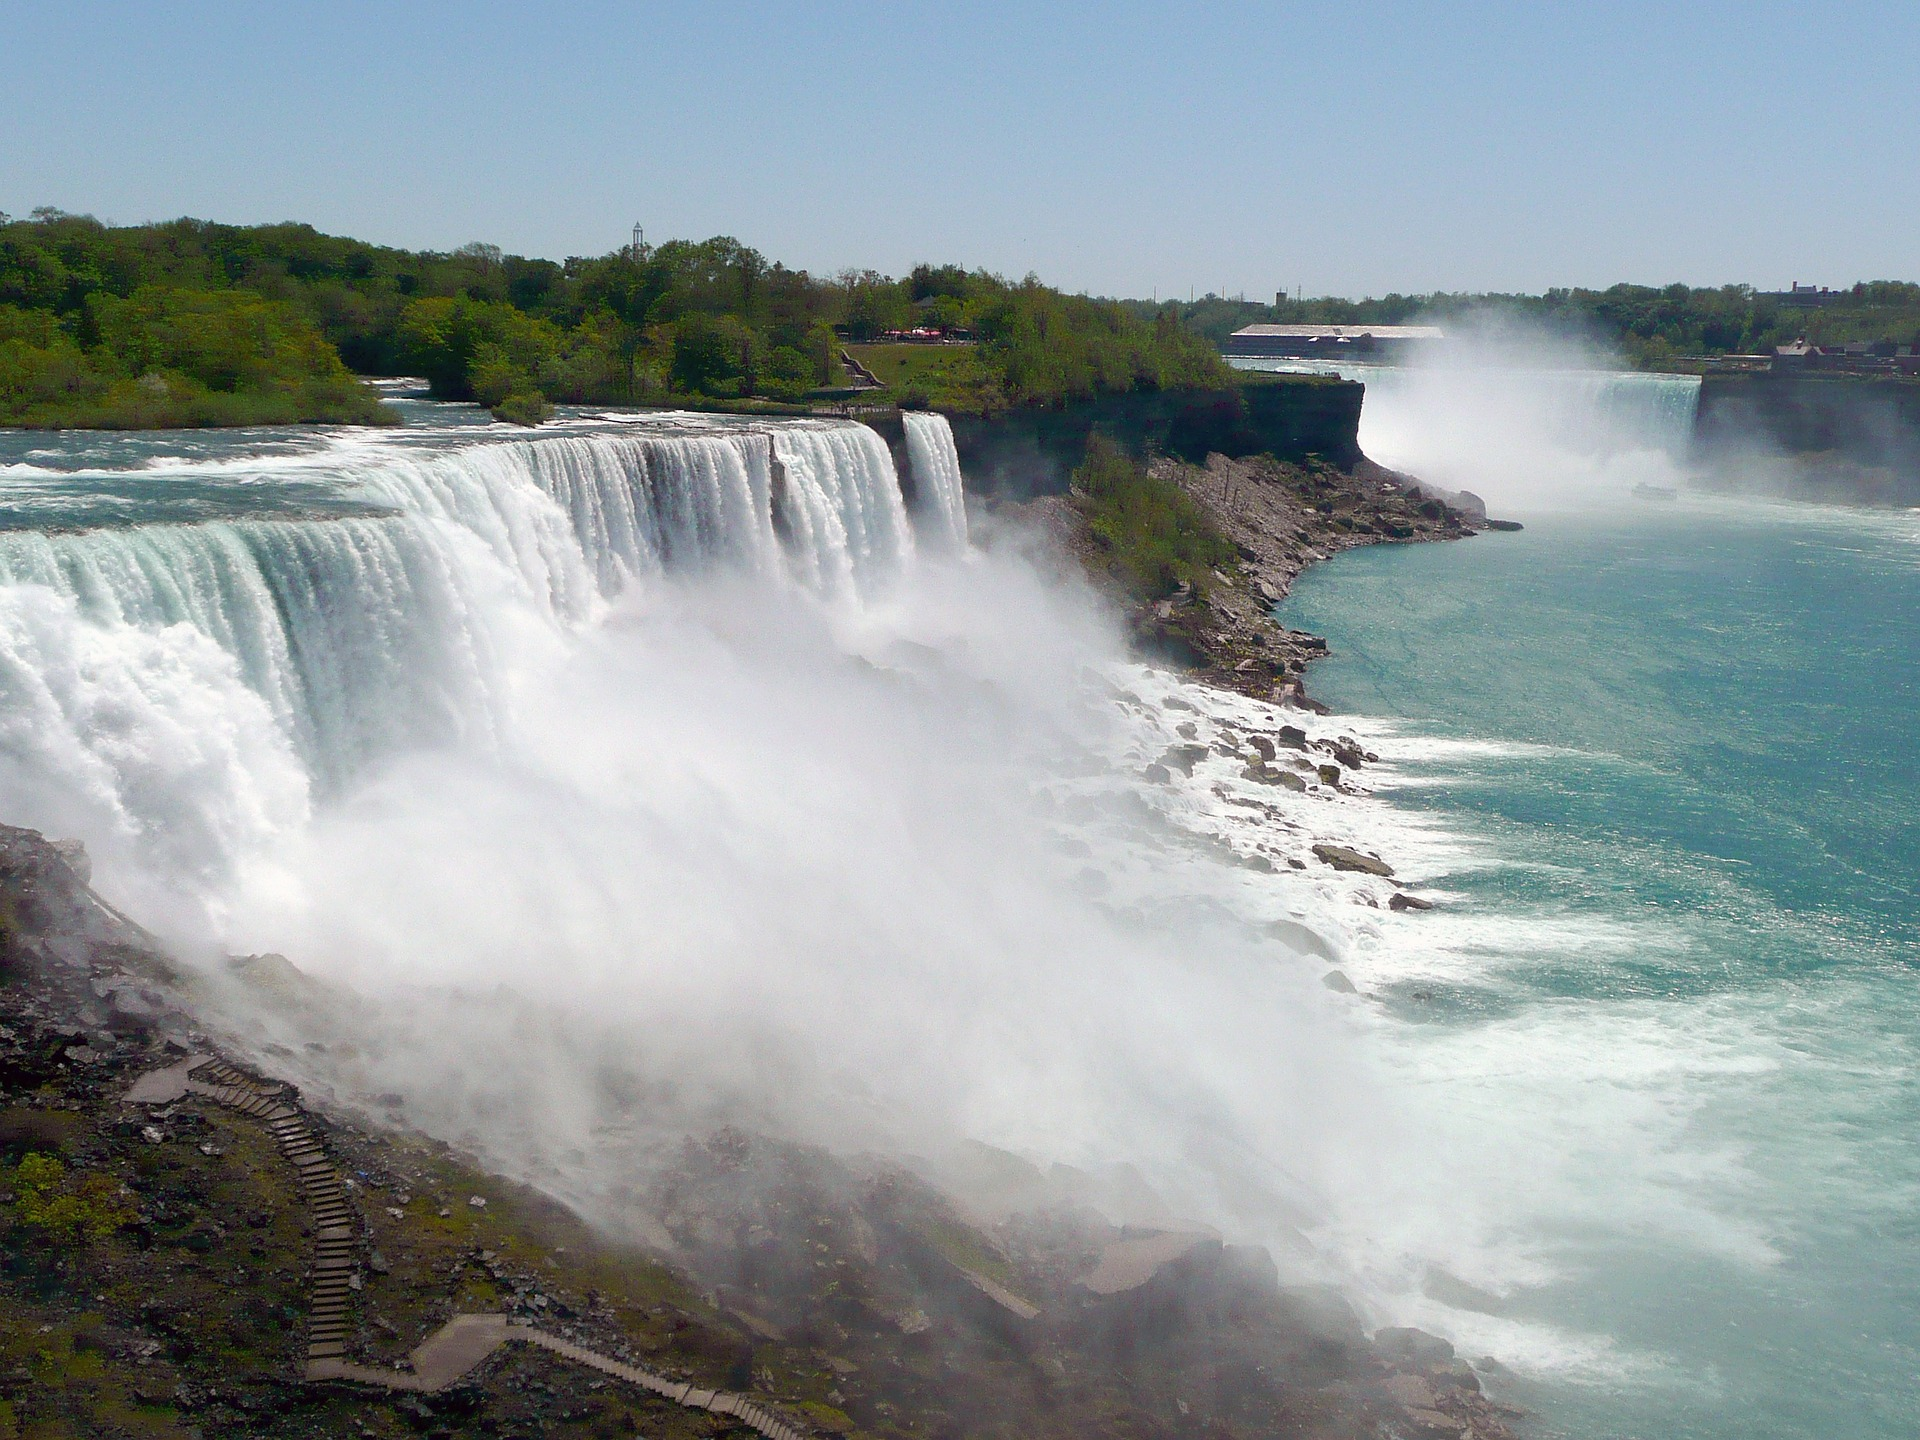 Niagara Falls, between Cananda and the USA